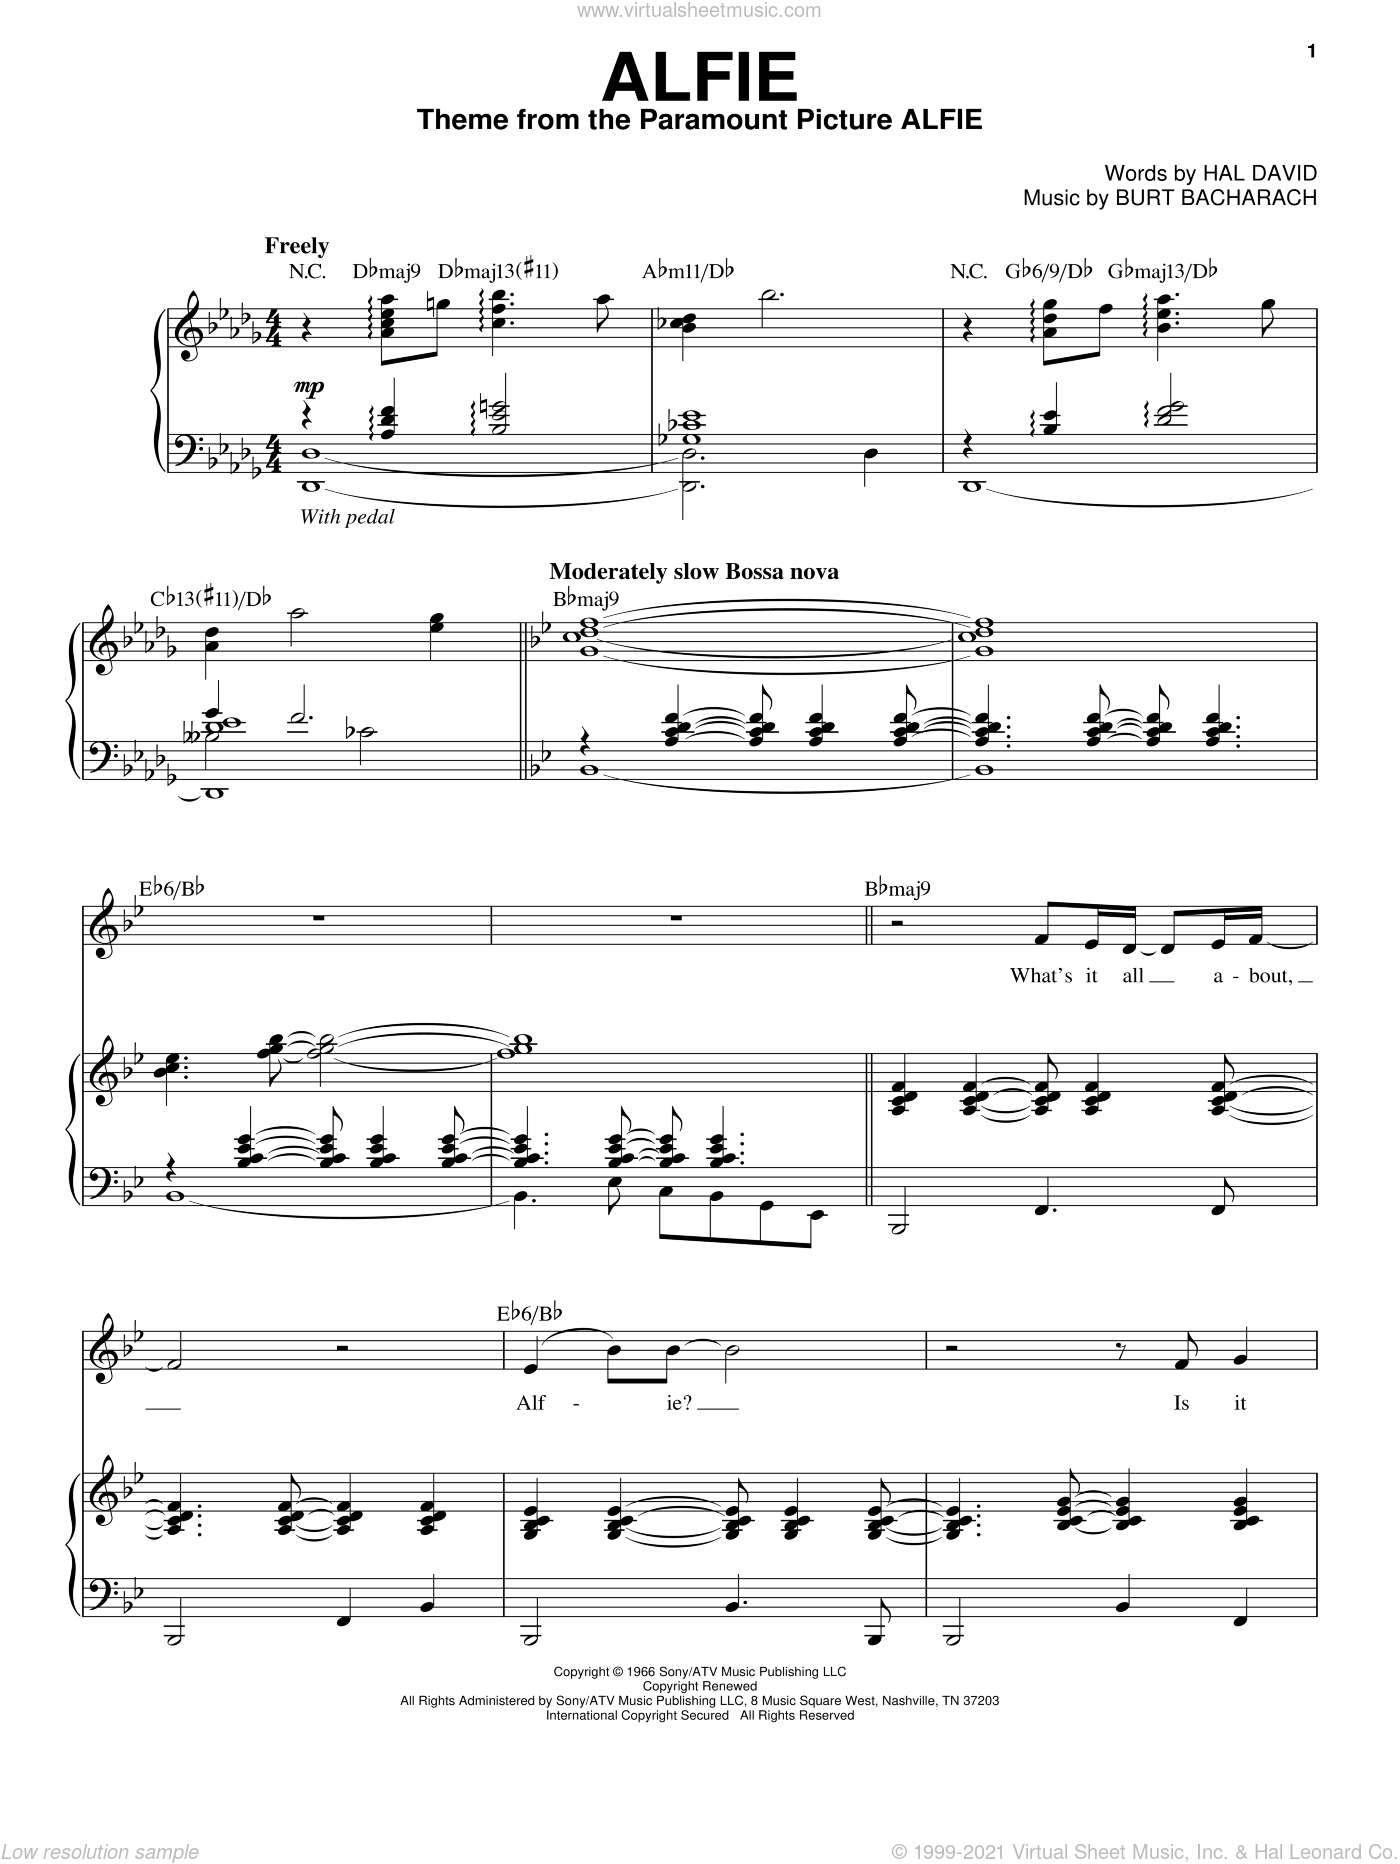 Alfie sheet music for voice and piano by Steve Tyrell, Bacharach & David, Burt Bacharach and Hal David, intermediate skill level